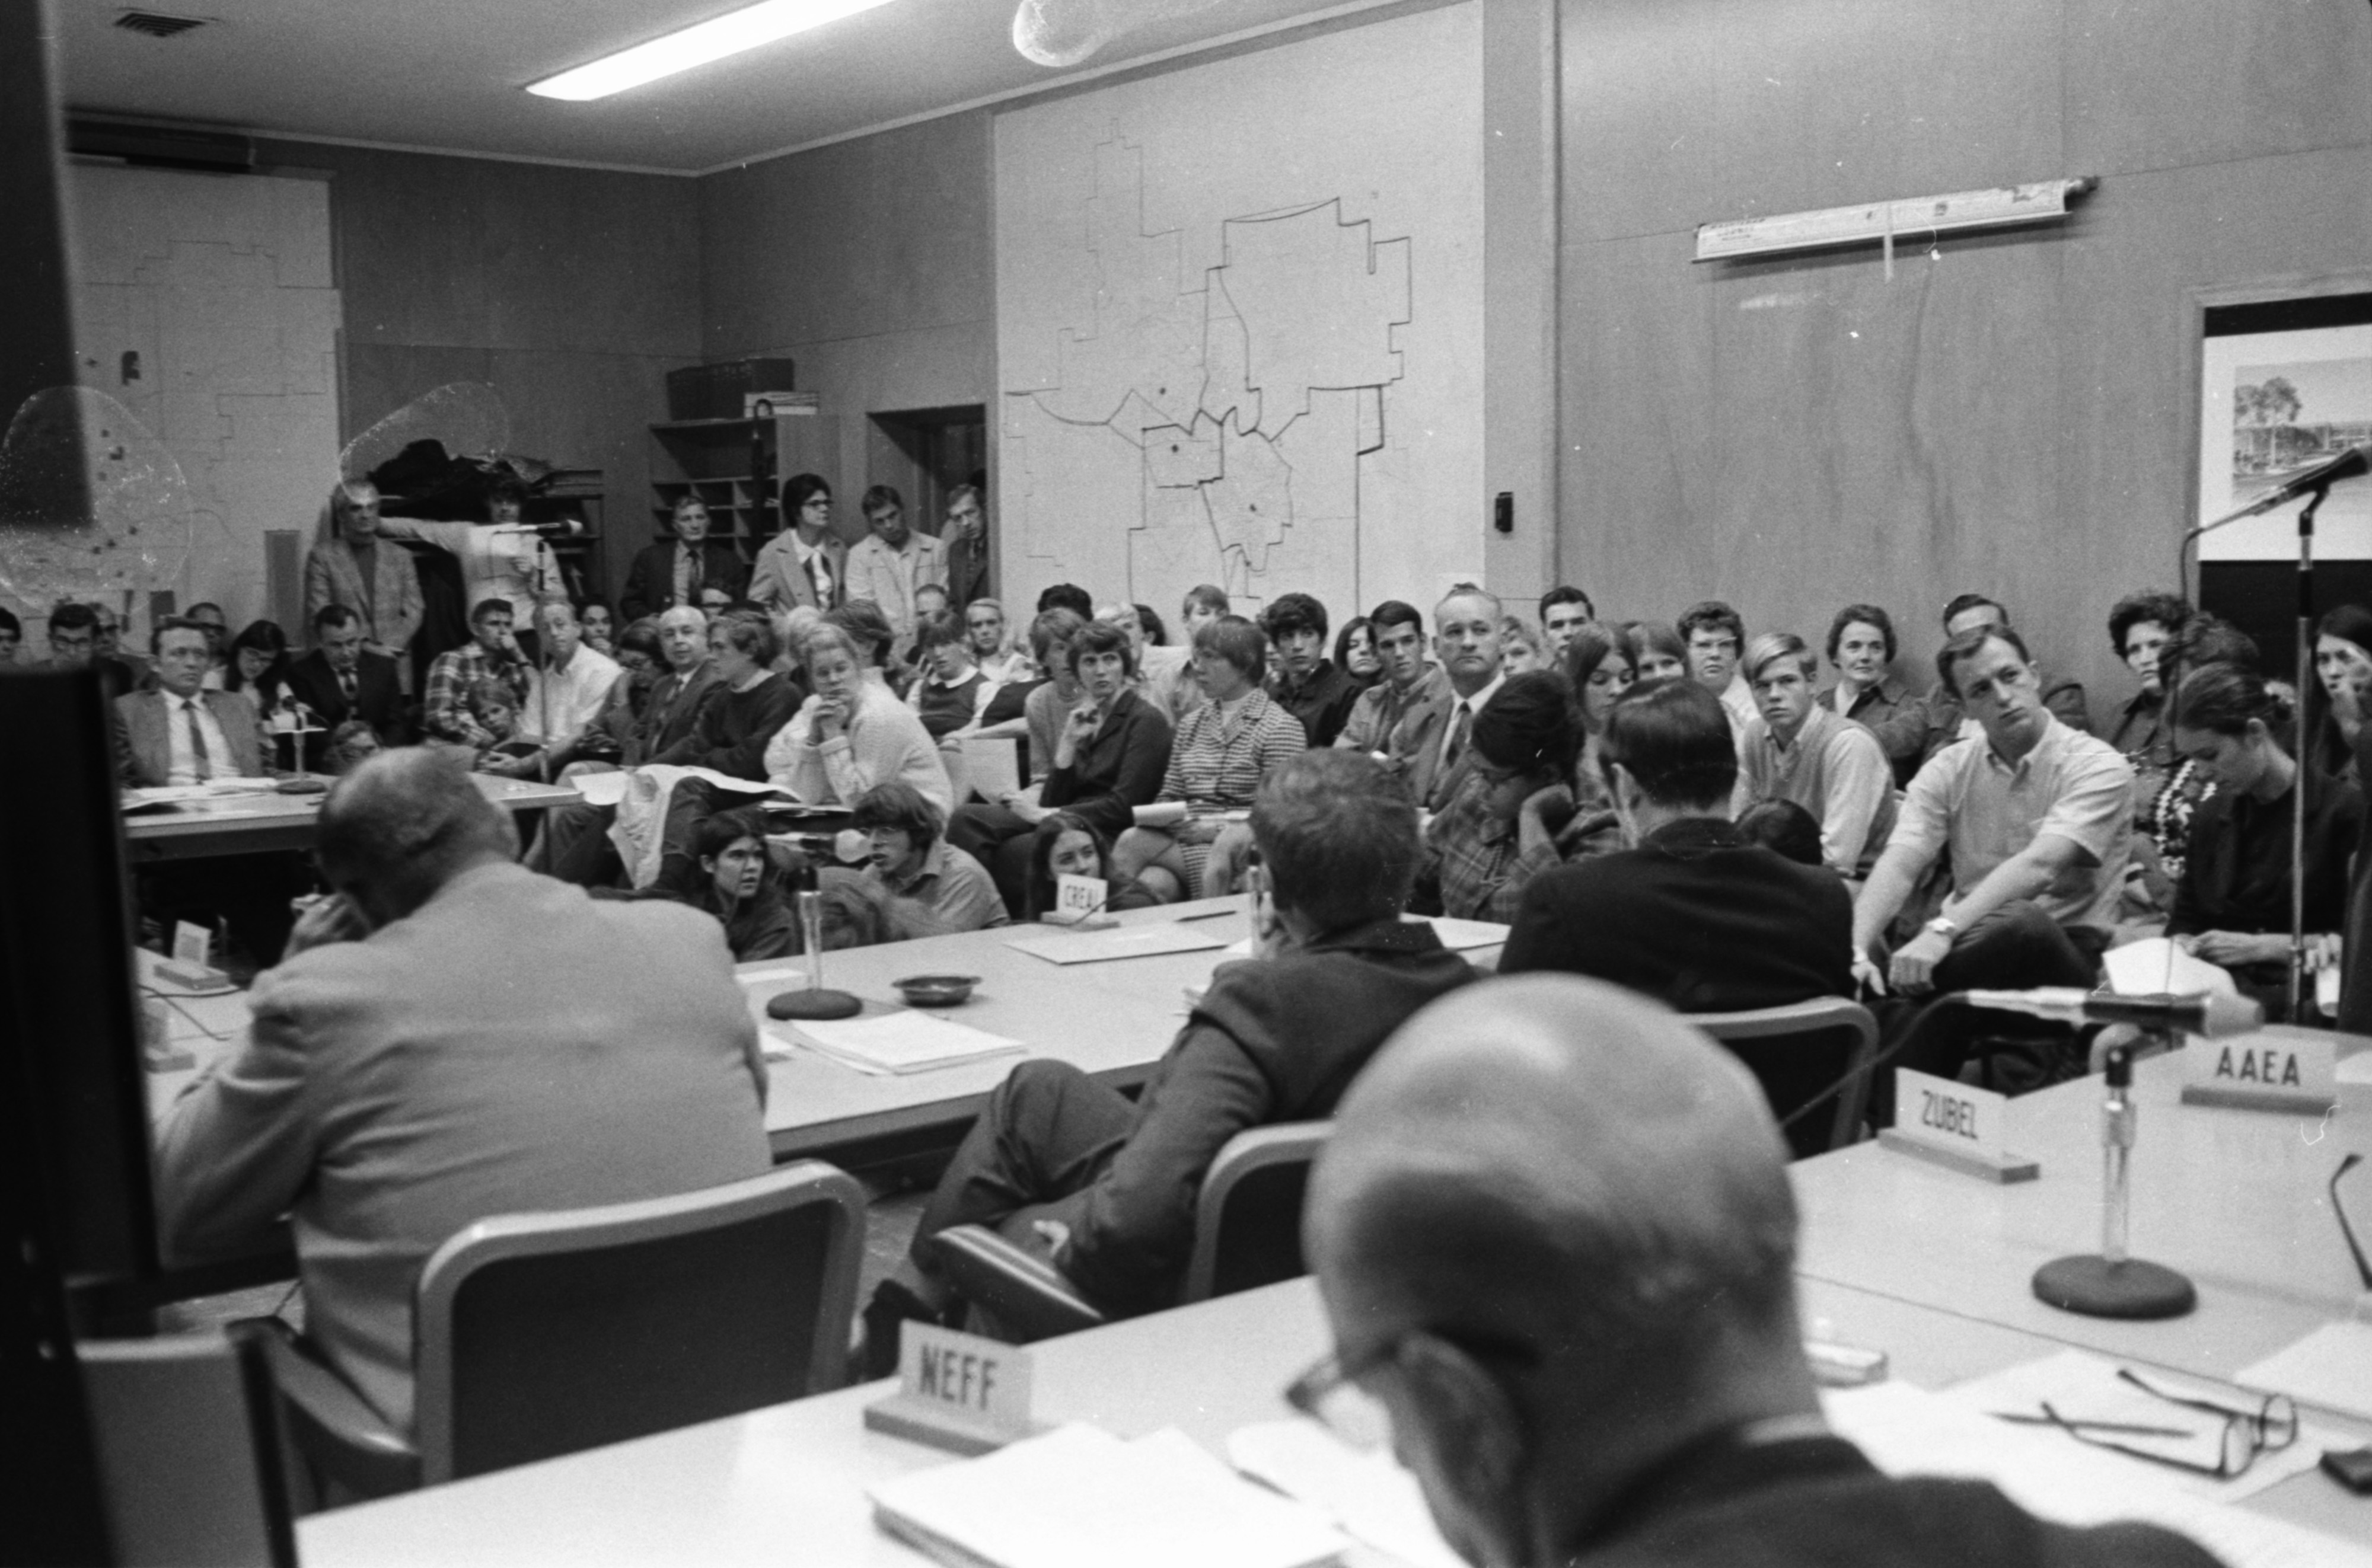 Ann Arbor Board of Education Forum On Pioneer High School Riot, November 1970 image